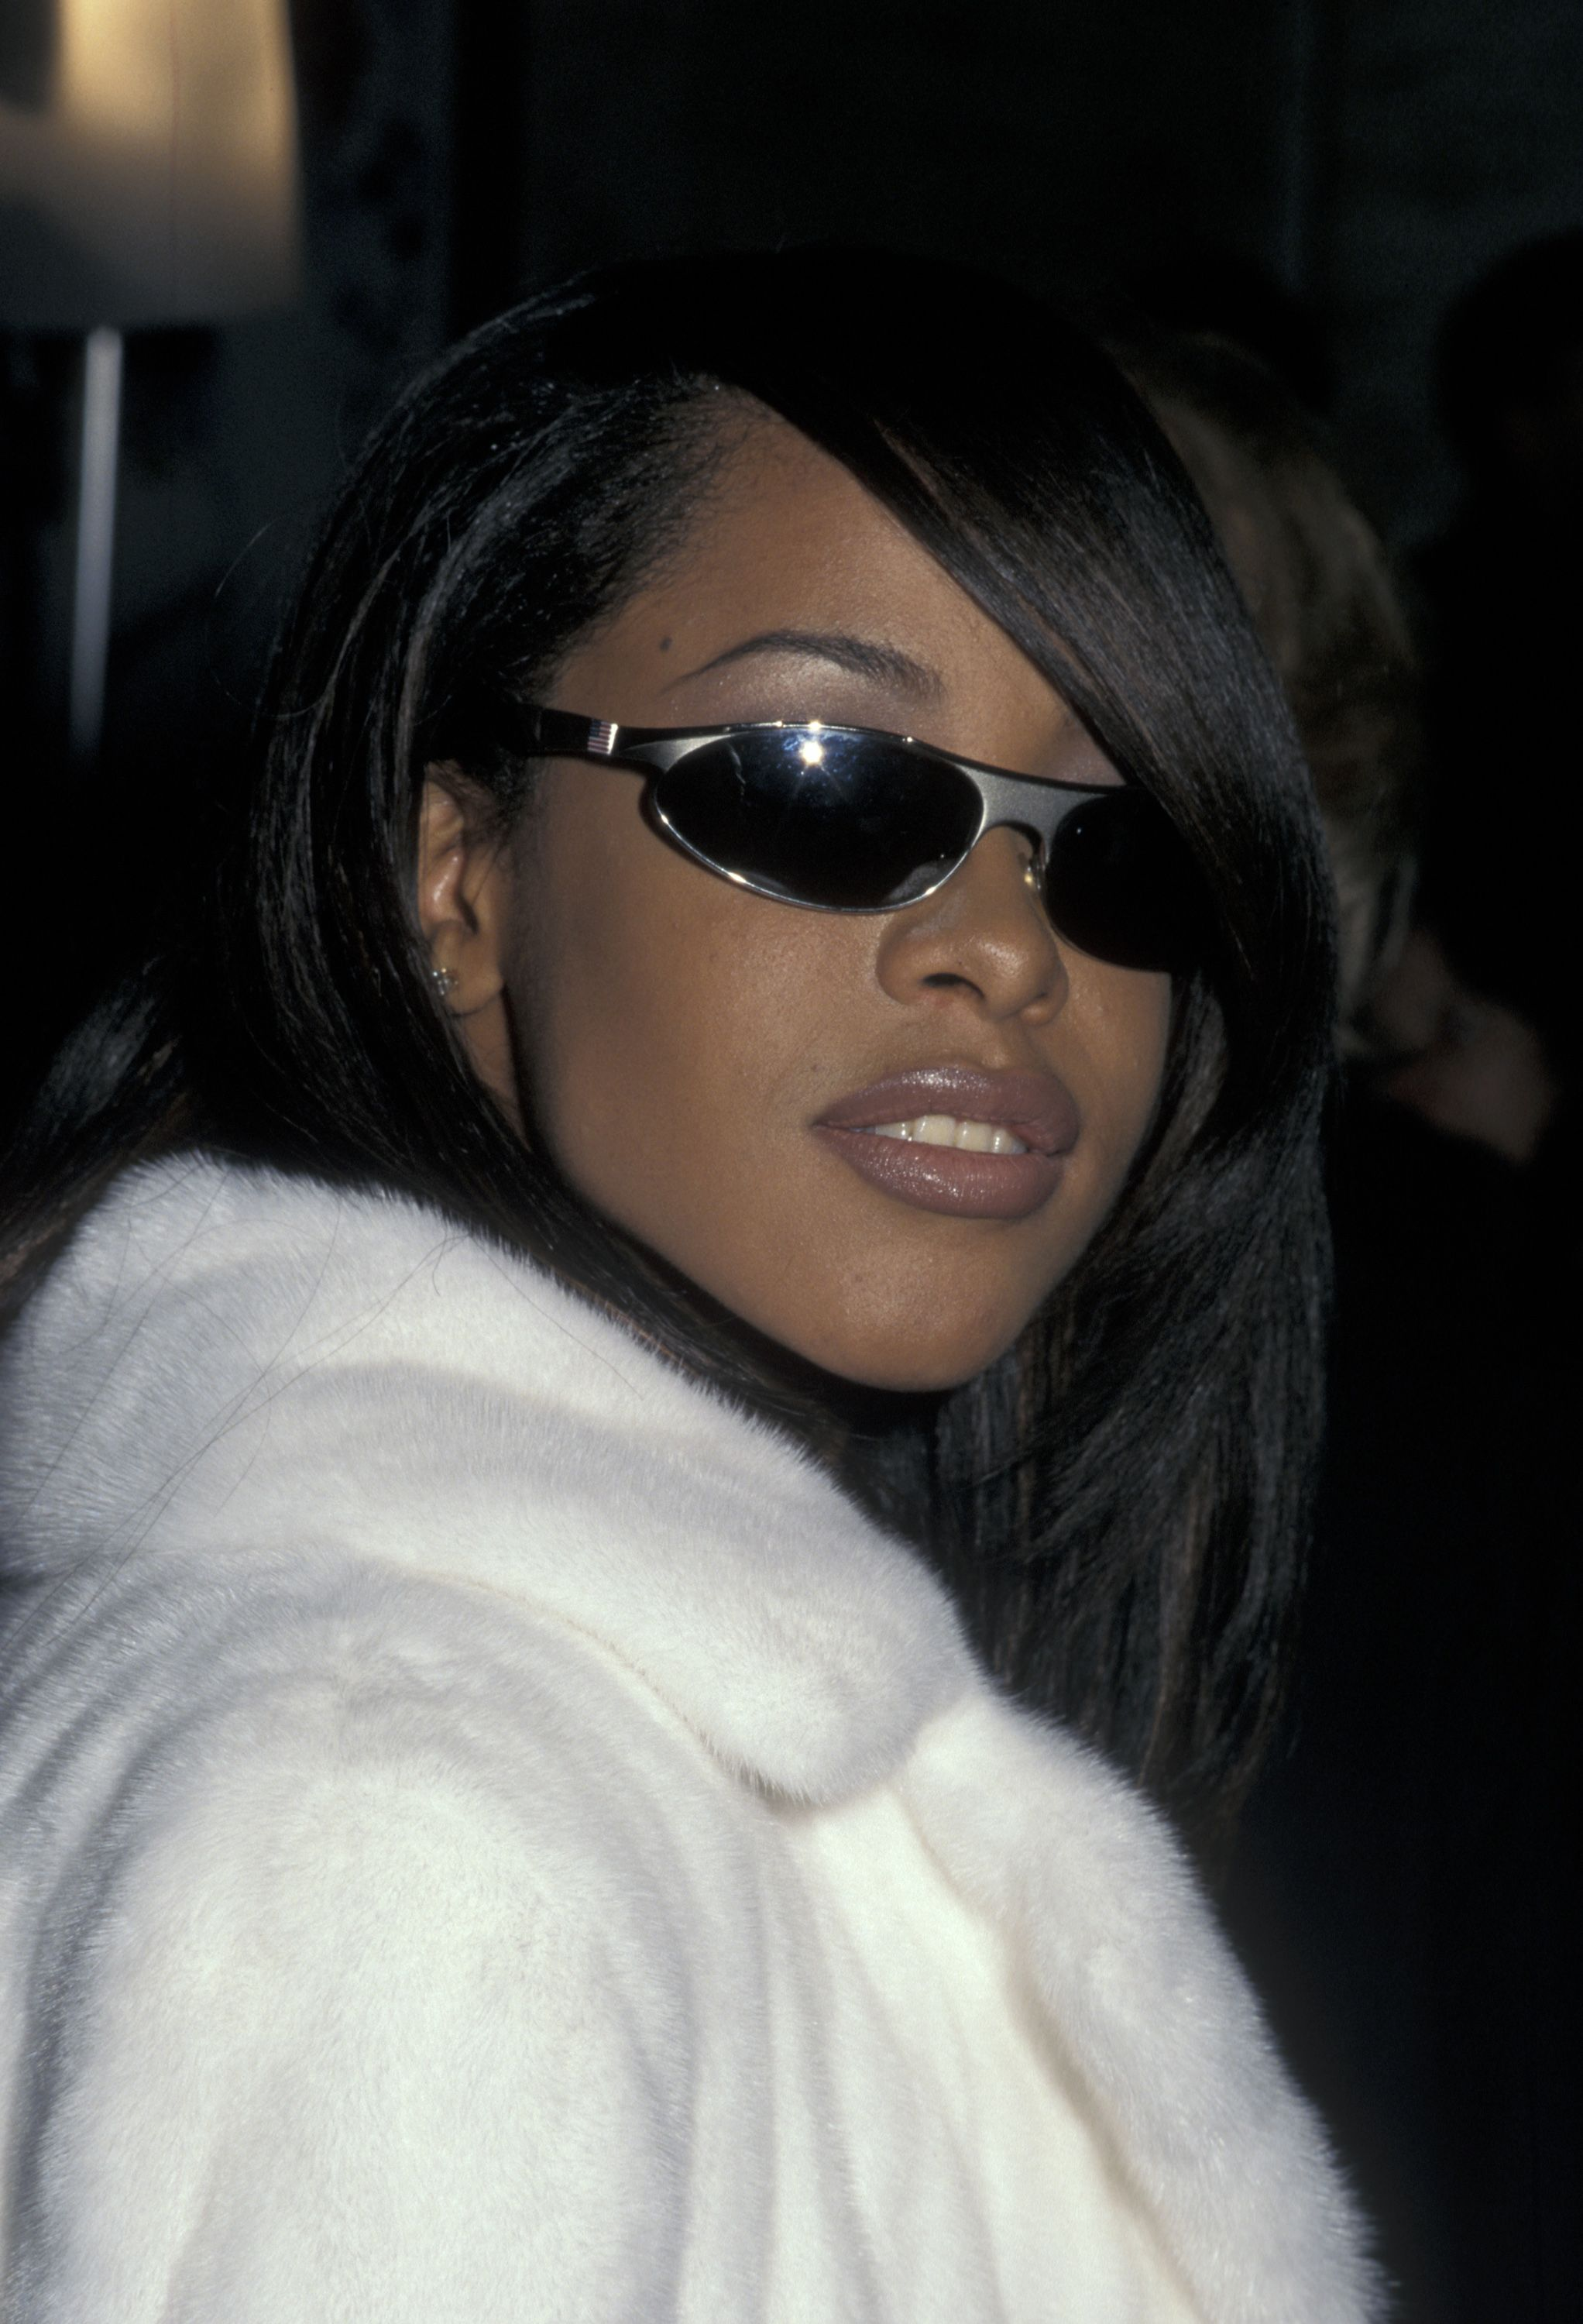 1579019fc1 Facts About Aaliyah - Aaliyah s Secret Moments